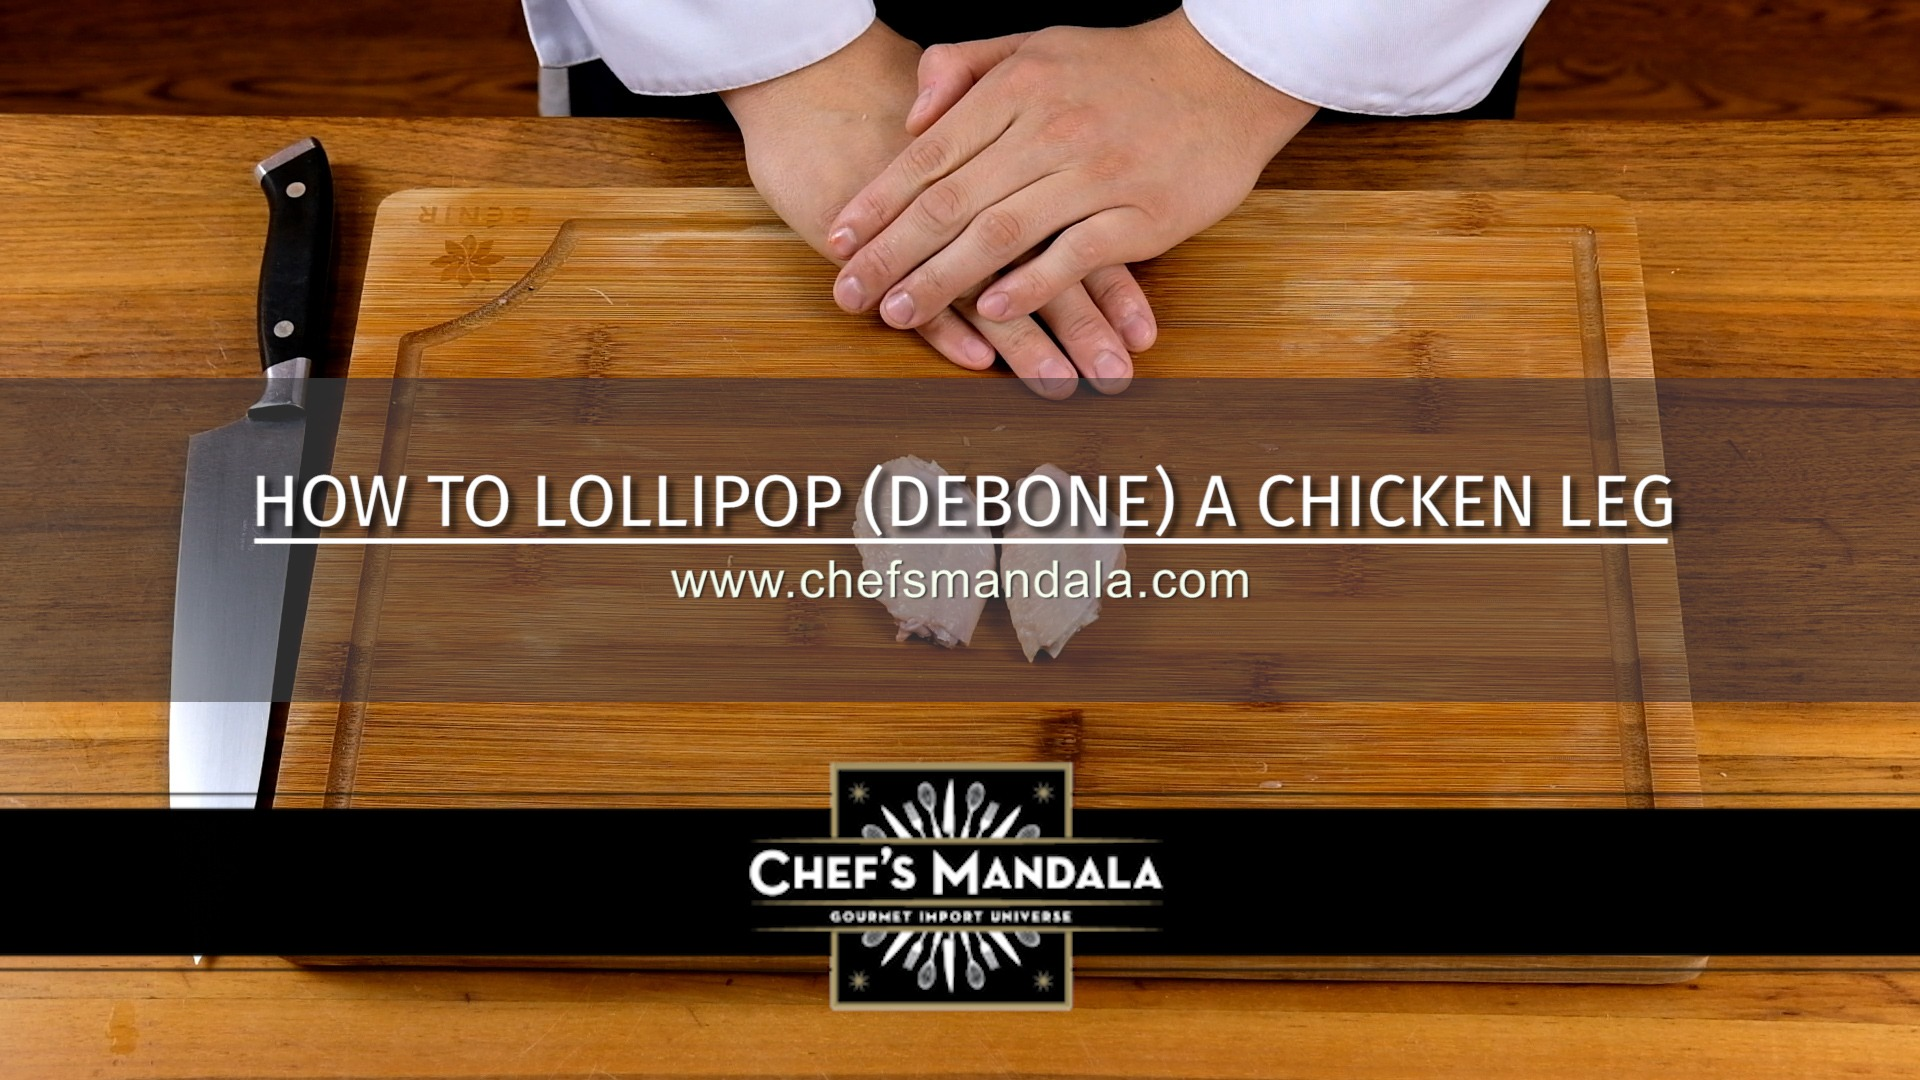 HOW TO LOLLIPOP-DEBONE A CHICKEN LEG